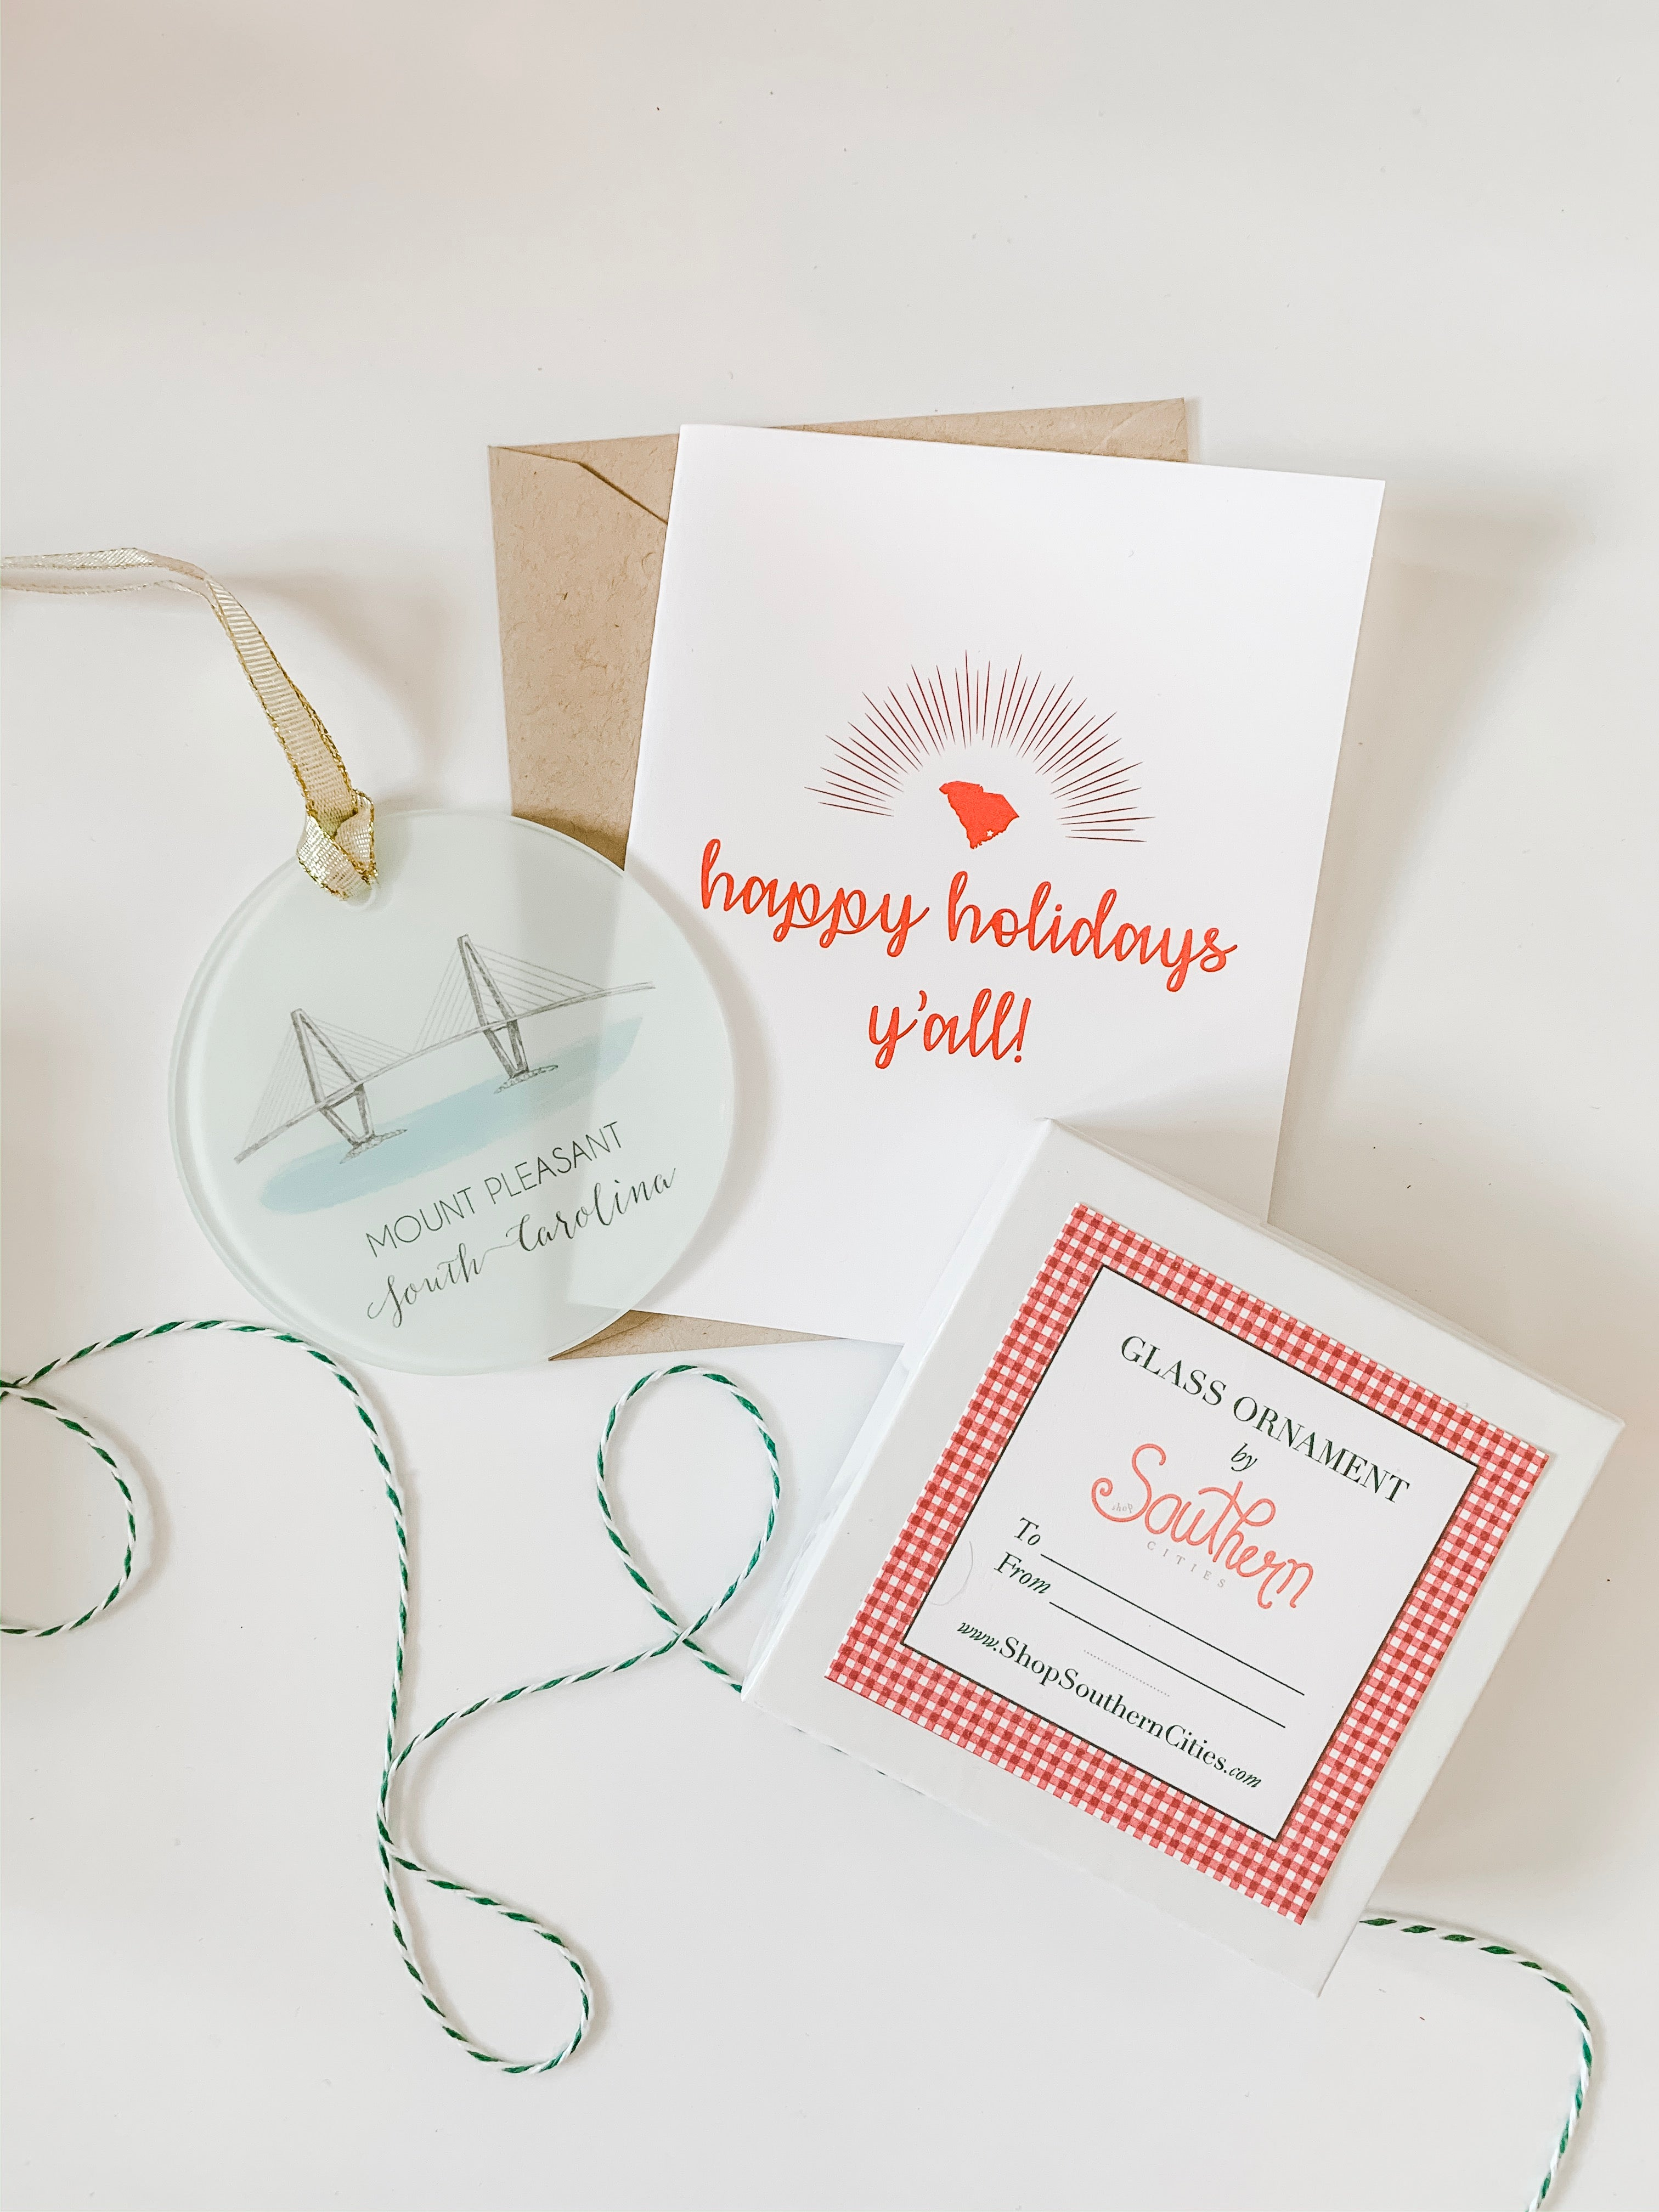 Christmas cards are a wonderful way to stay connected to friends and family.